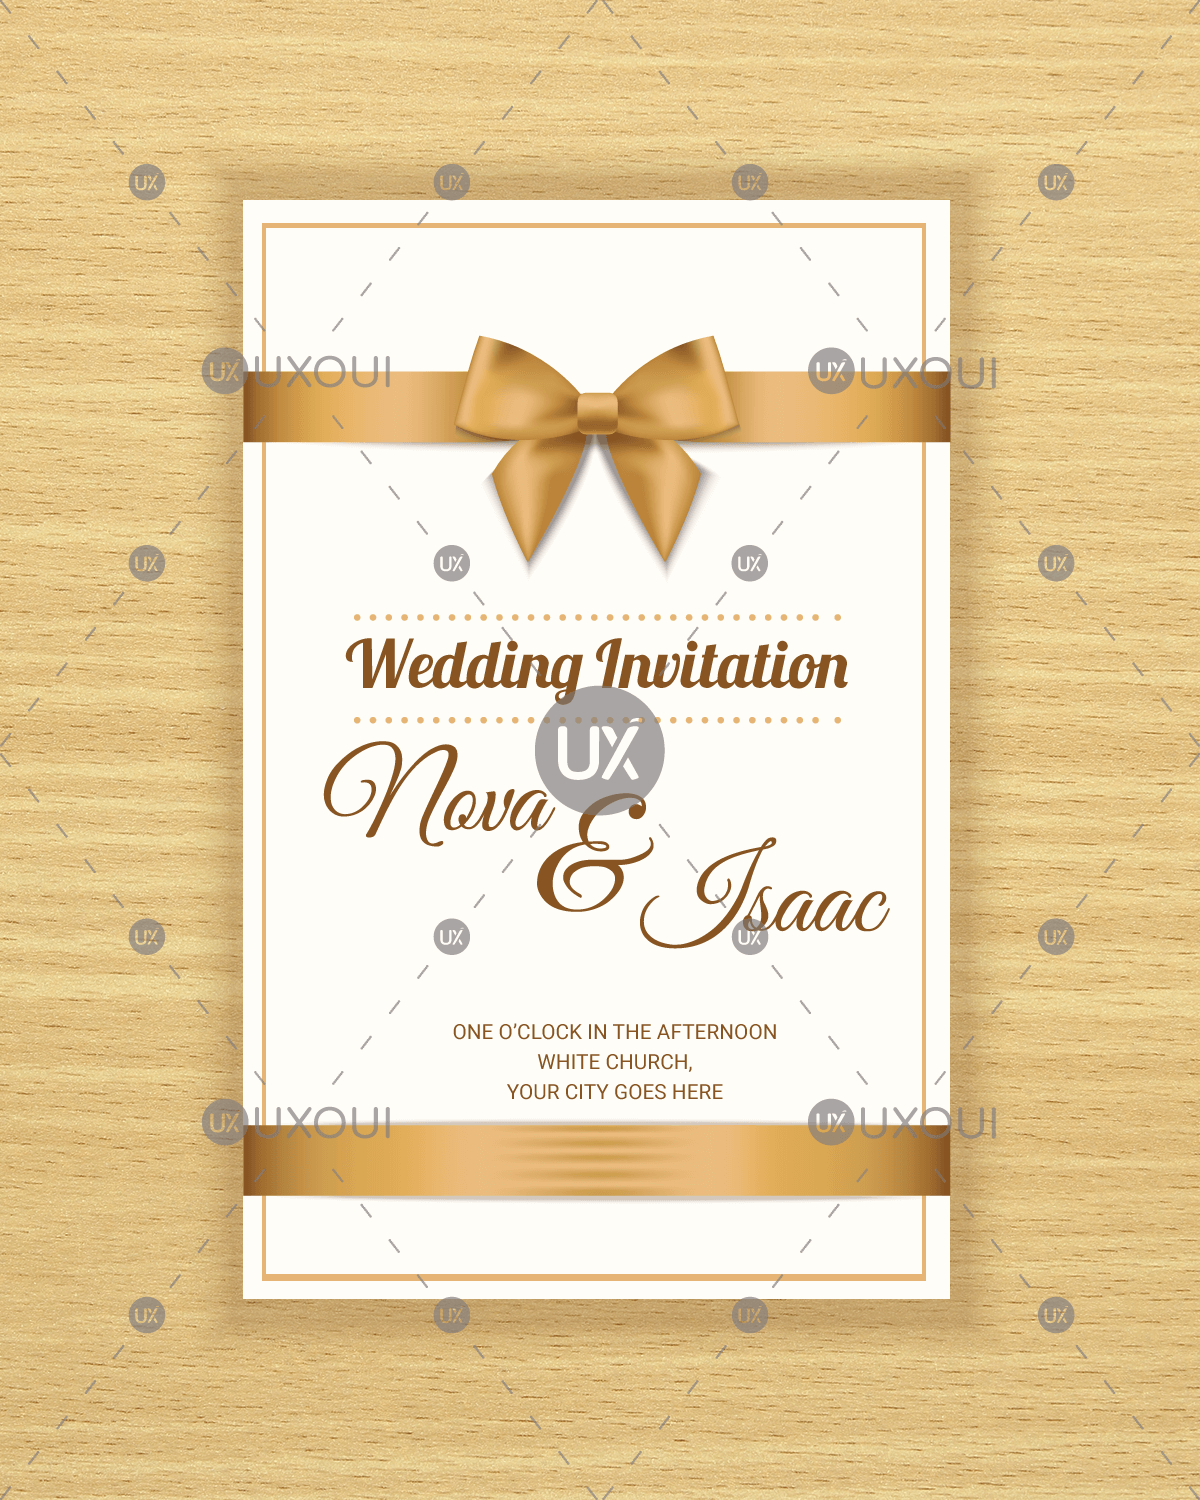 9 Best Picture Design Of Invitation Card In 2021 Online Invitation Card Marriage Invitation Card Wedding Invitation Card Design